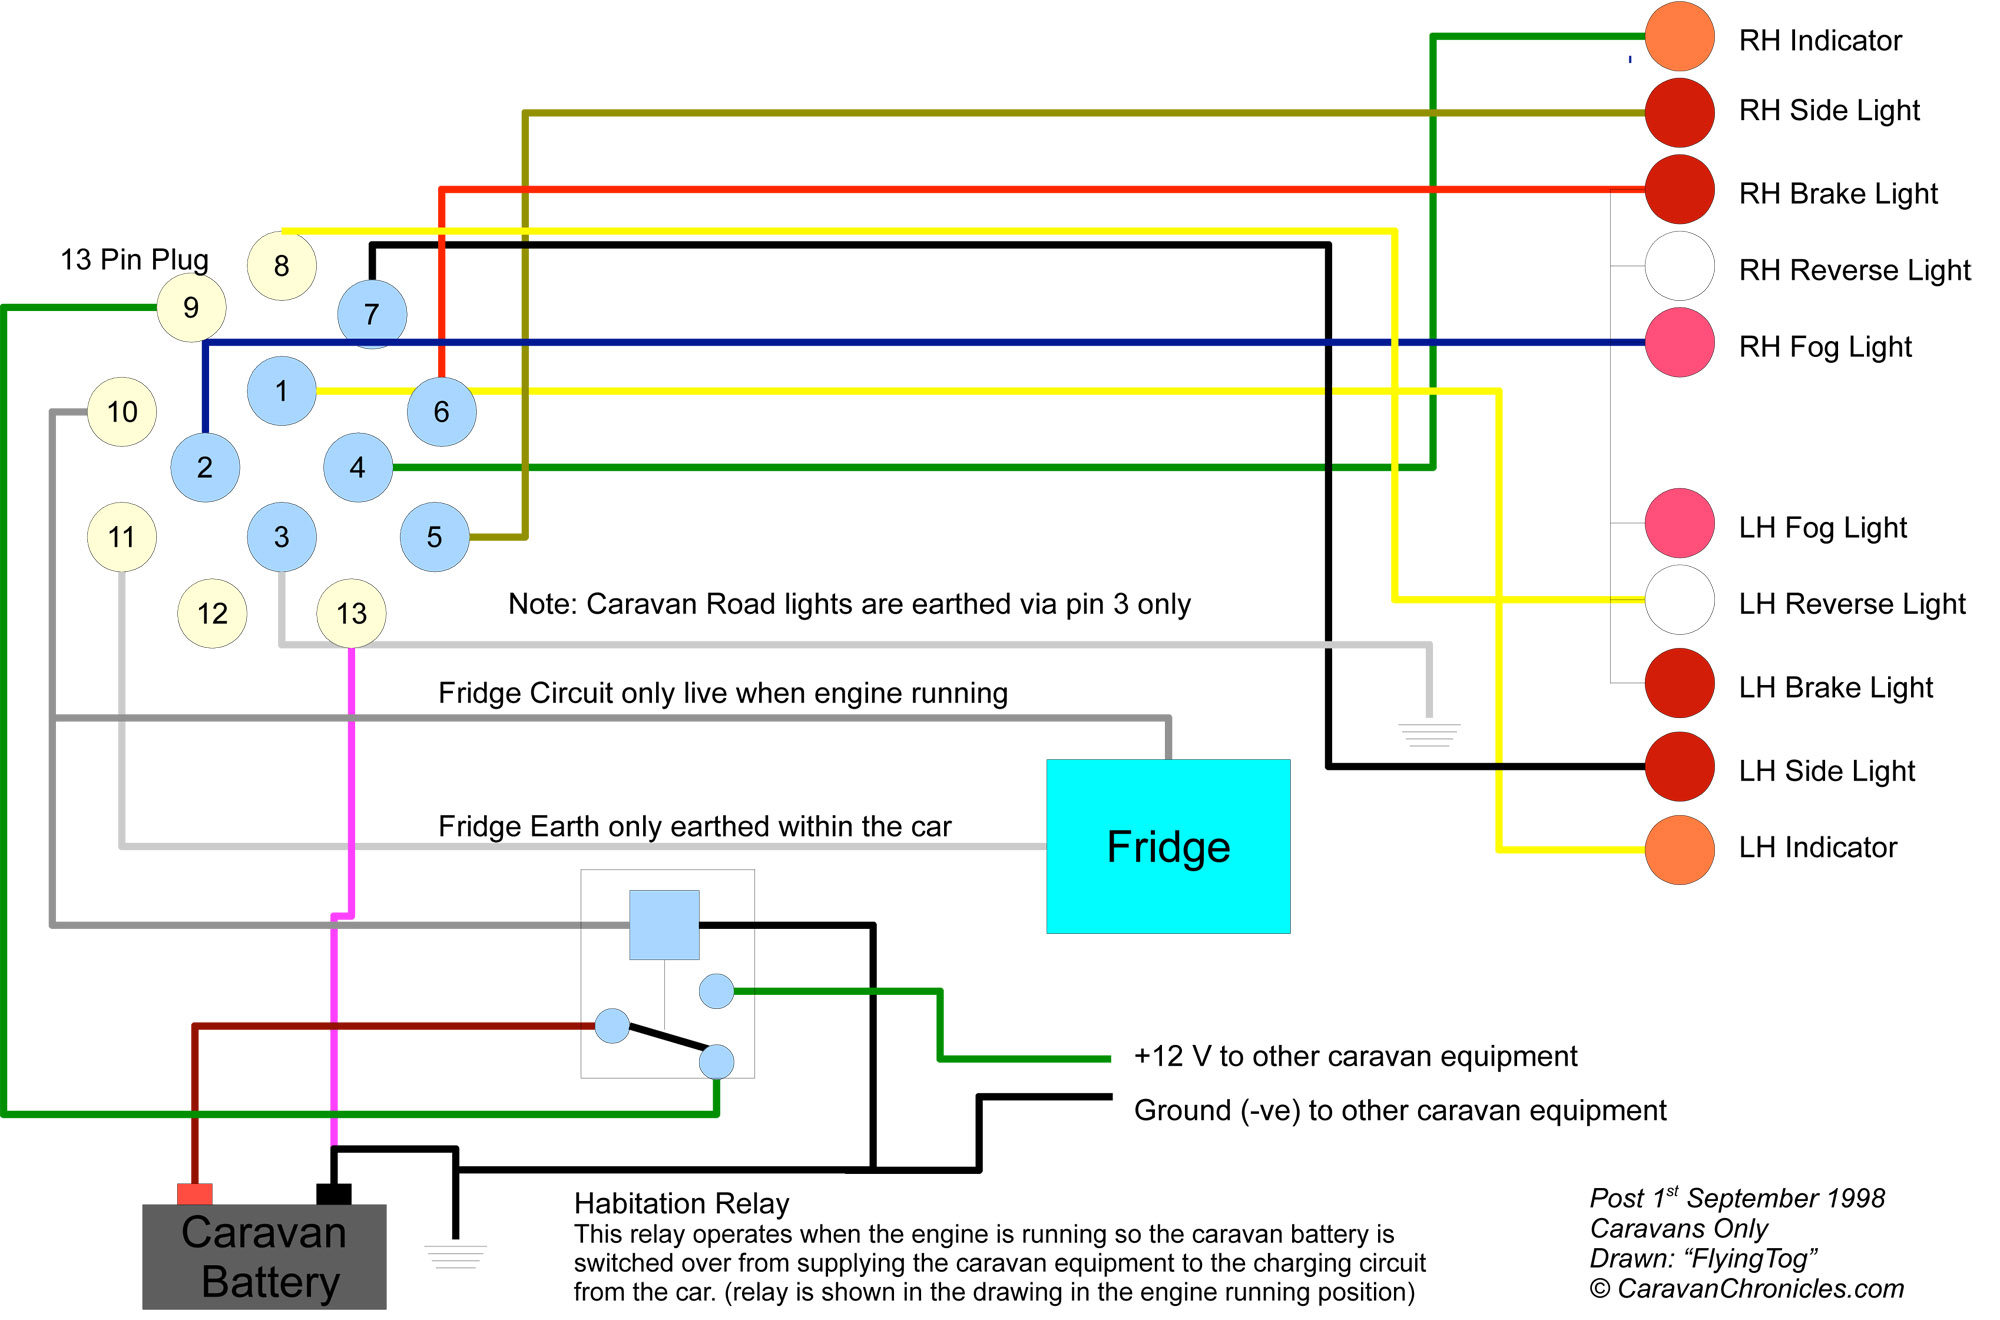 caravan wiring 13 pin wiring diagram for caravan socket versa wiring diagram \u2022 wiring ford c max towbar wiring diagram at eliteediting.co